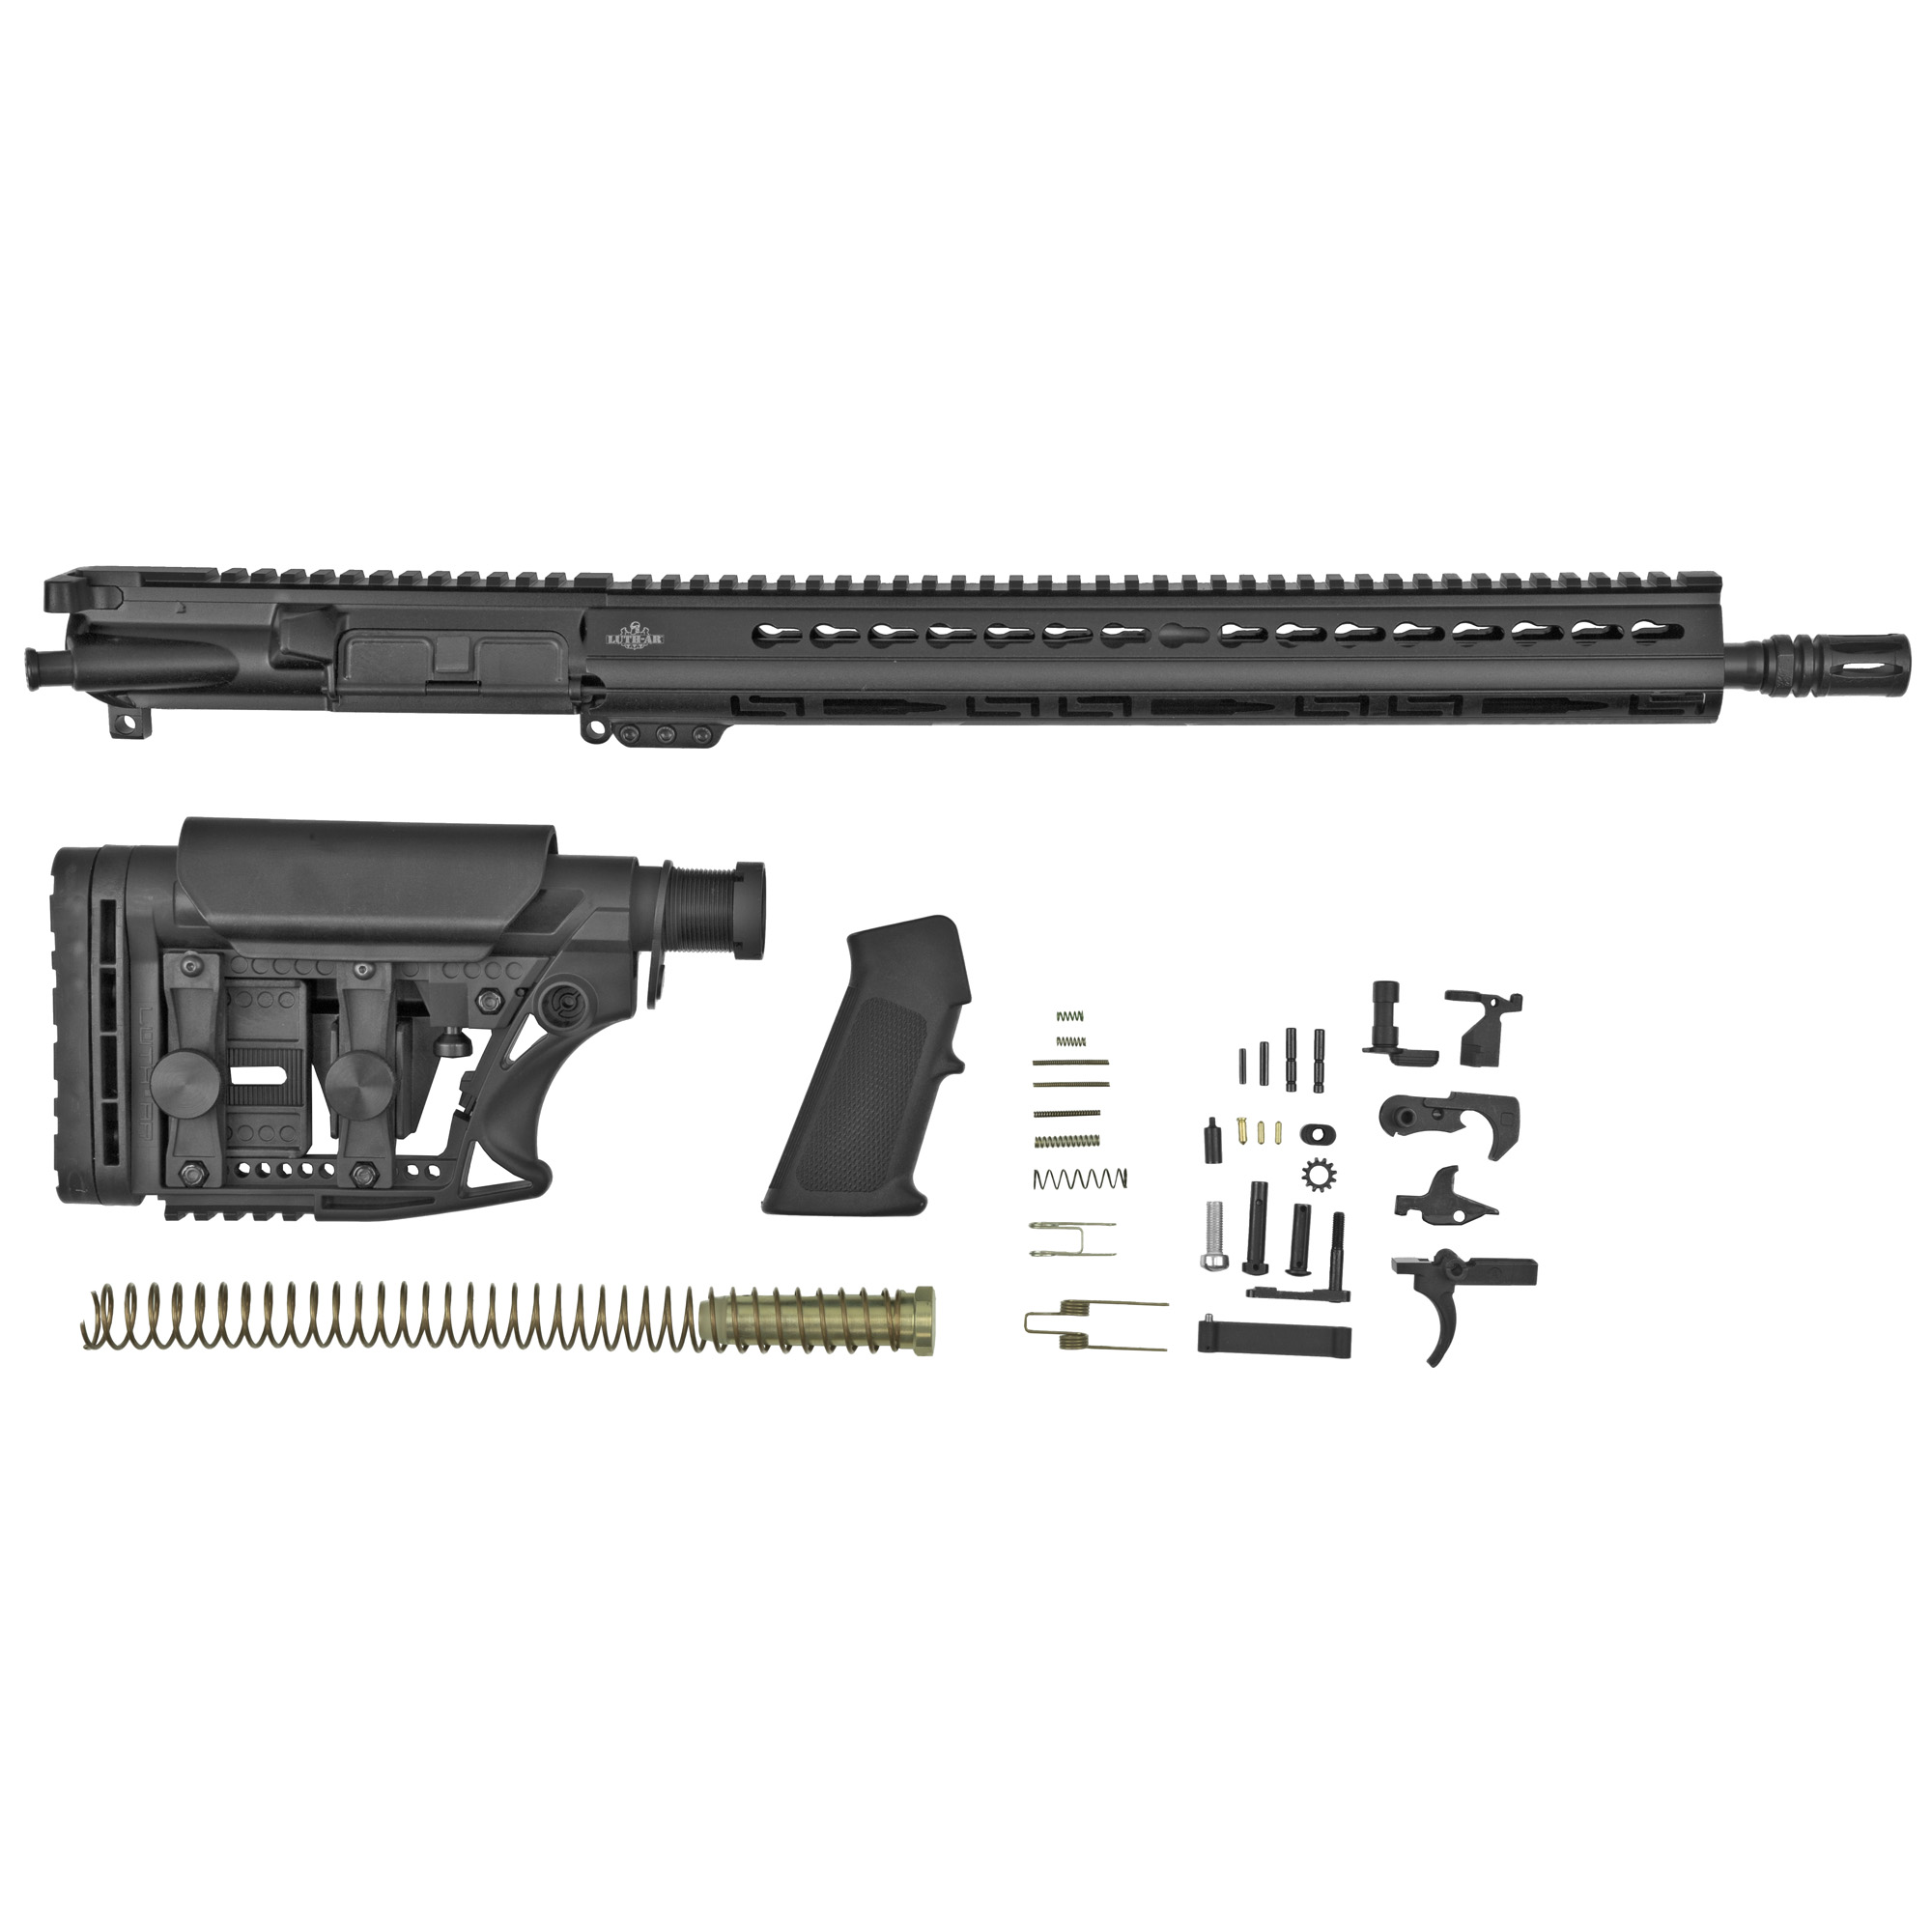 "This kit contains everything you need to build your own AR except the stripped lower receiver. The Kit Contains: Fully assembled 16"" .223 Rem Fluted Bull Barrel Upper with 15"" Keymod Palm Handguard(R)"" MBA-3 Adjustable Carbine Buttstock Assembly"" Complete Lower Parts Kit. This Kit does not come with the lower receiver. You will have to supply a lower receiver purchased elsewhere. A Milspec lower is recommended."